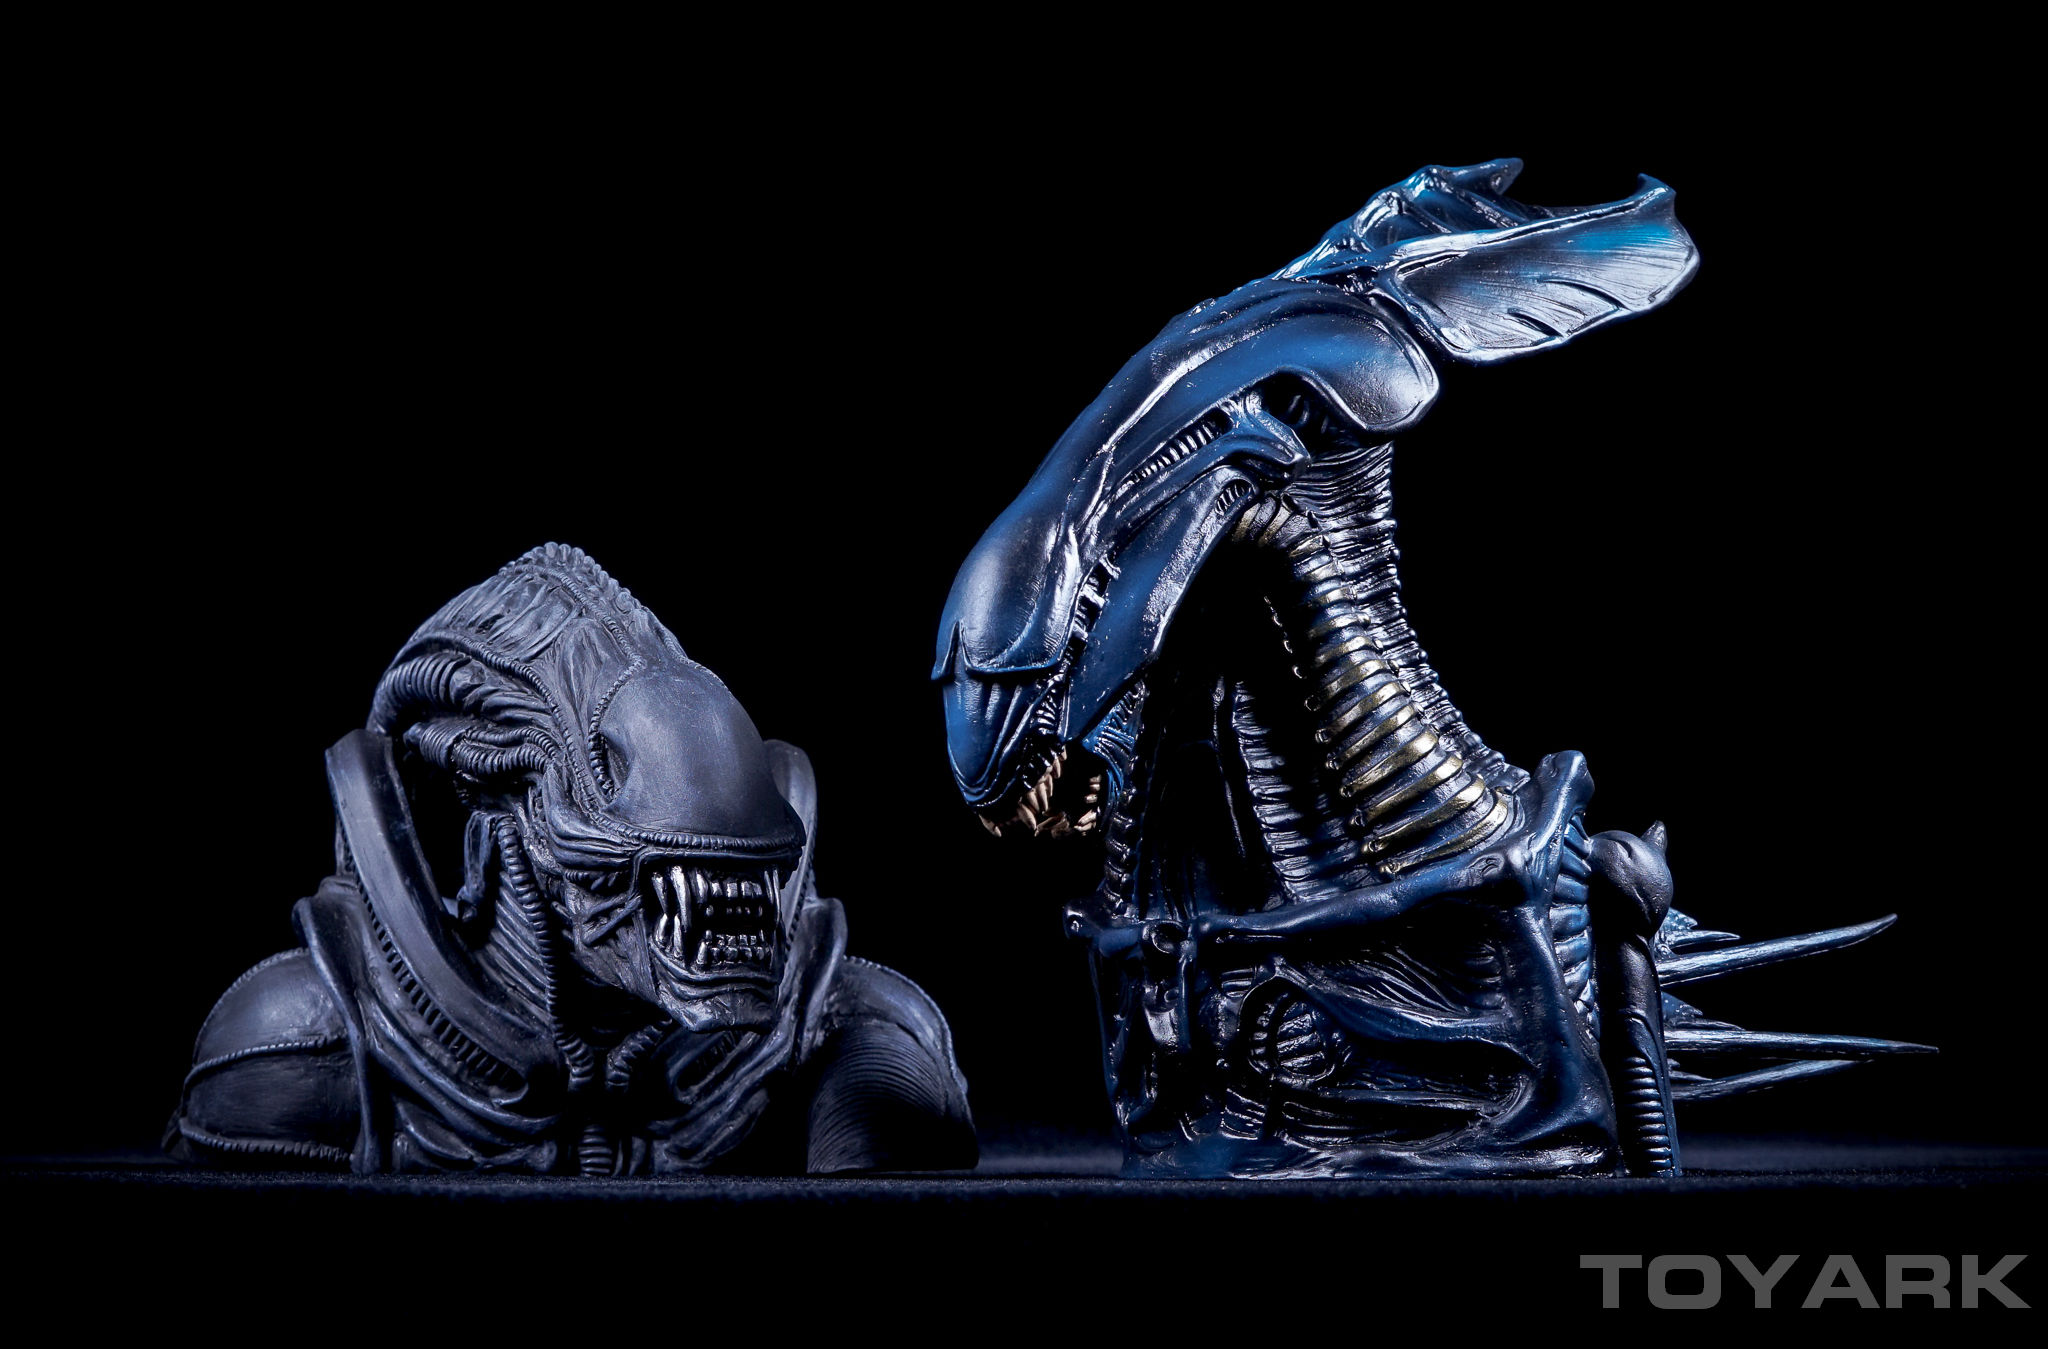 http://news.toyark.com/wp-content/uploads/sites/4/2016/04/Alien-Queen-Bust-Bank-024.jpg